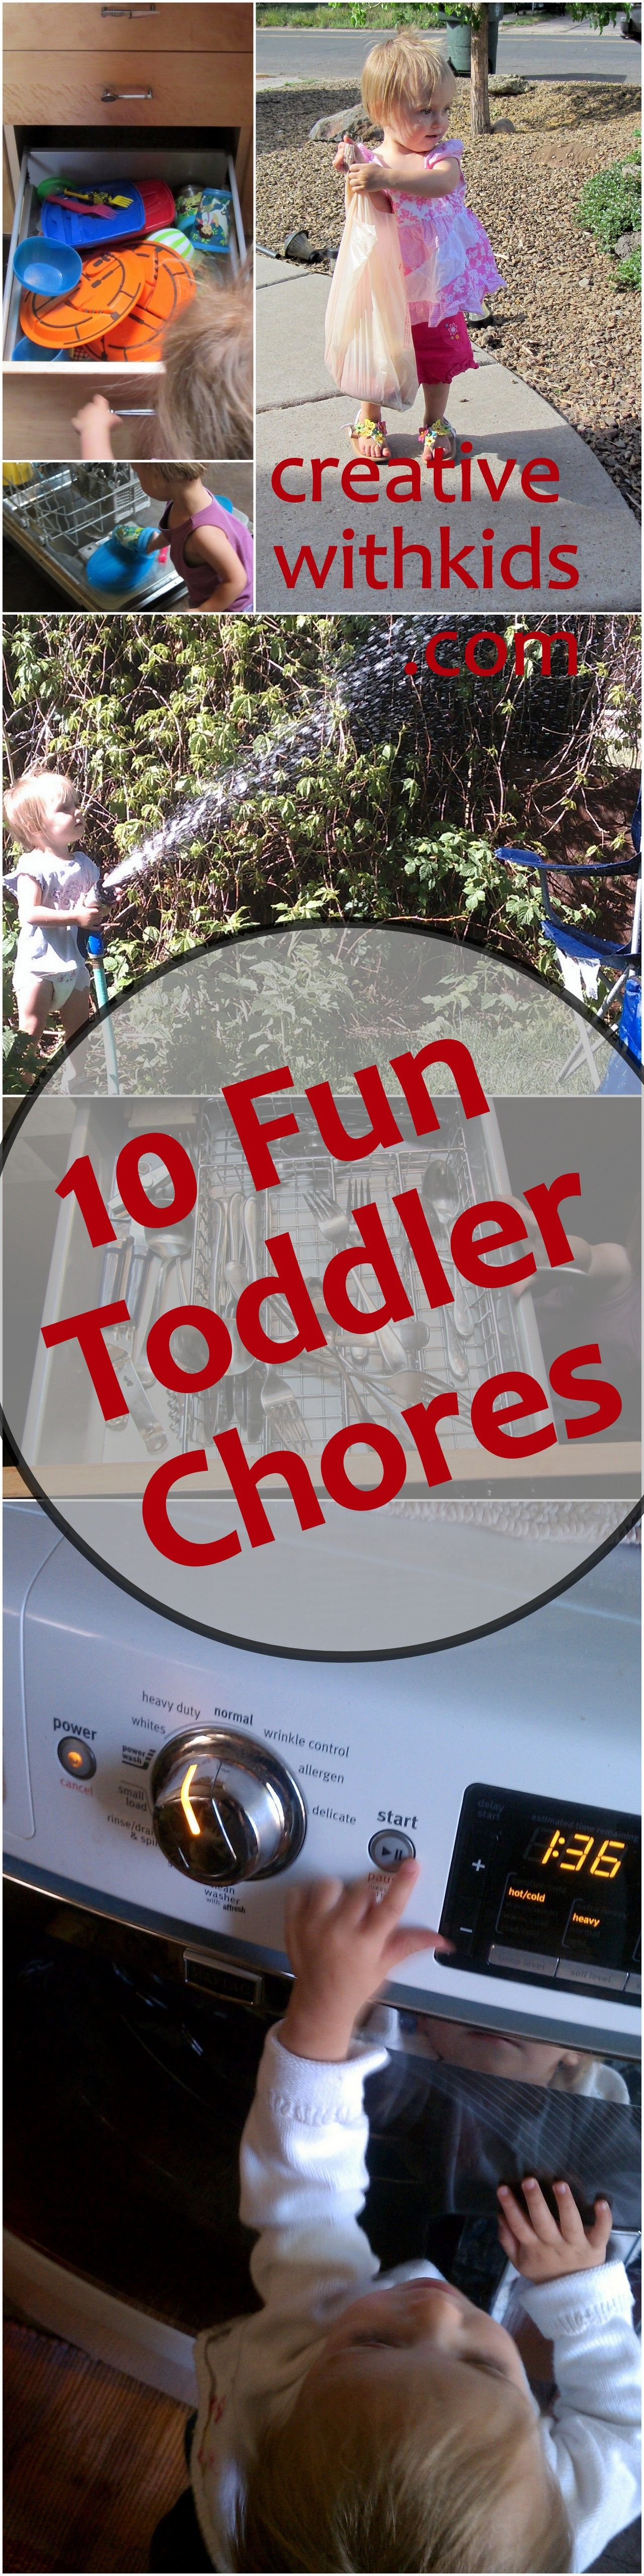 Toddler chores...encouraging ideas to grow into 'Mommy's little helper!' :)